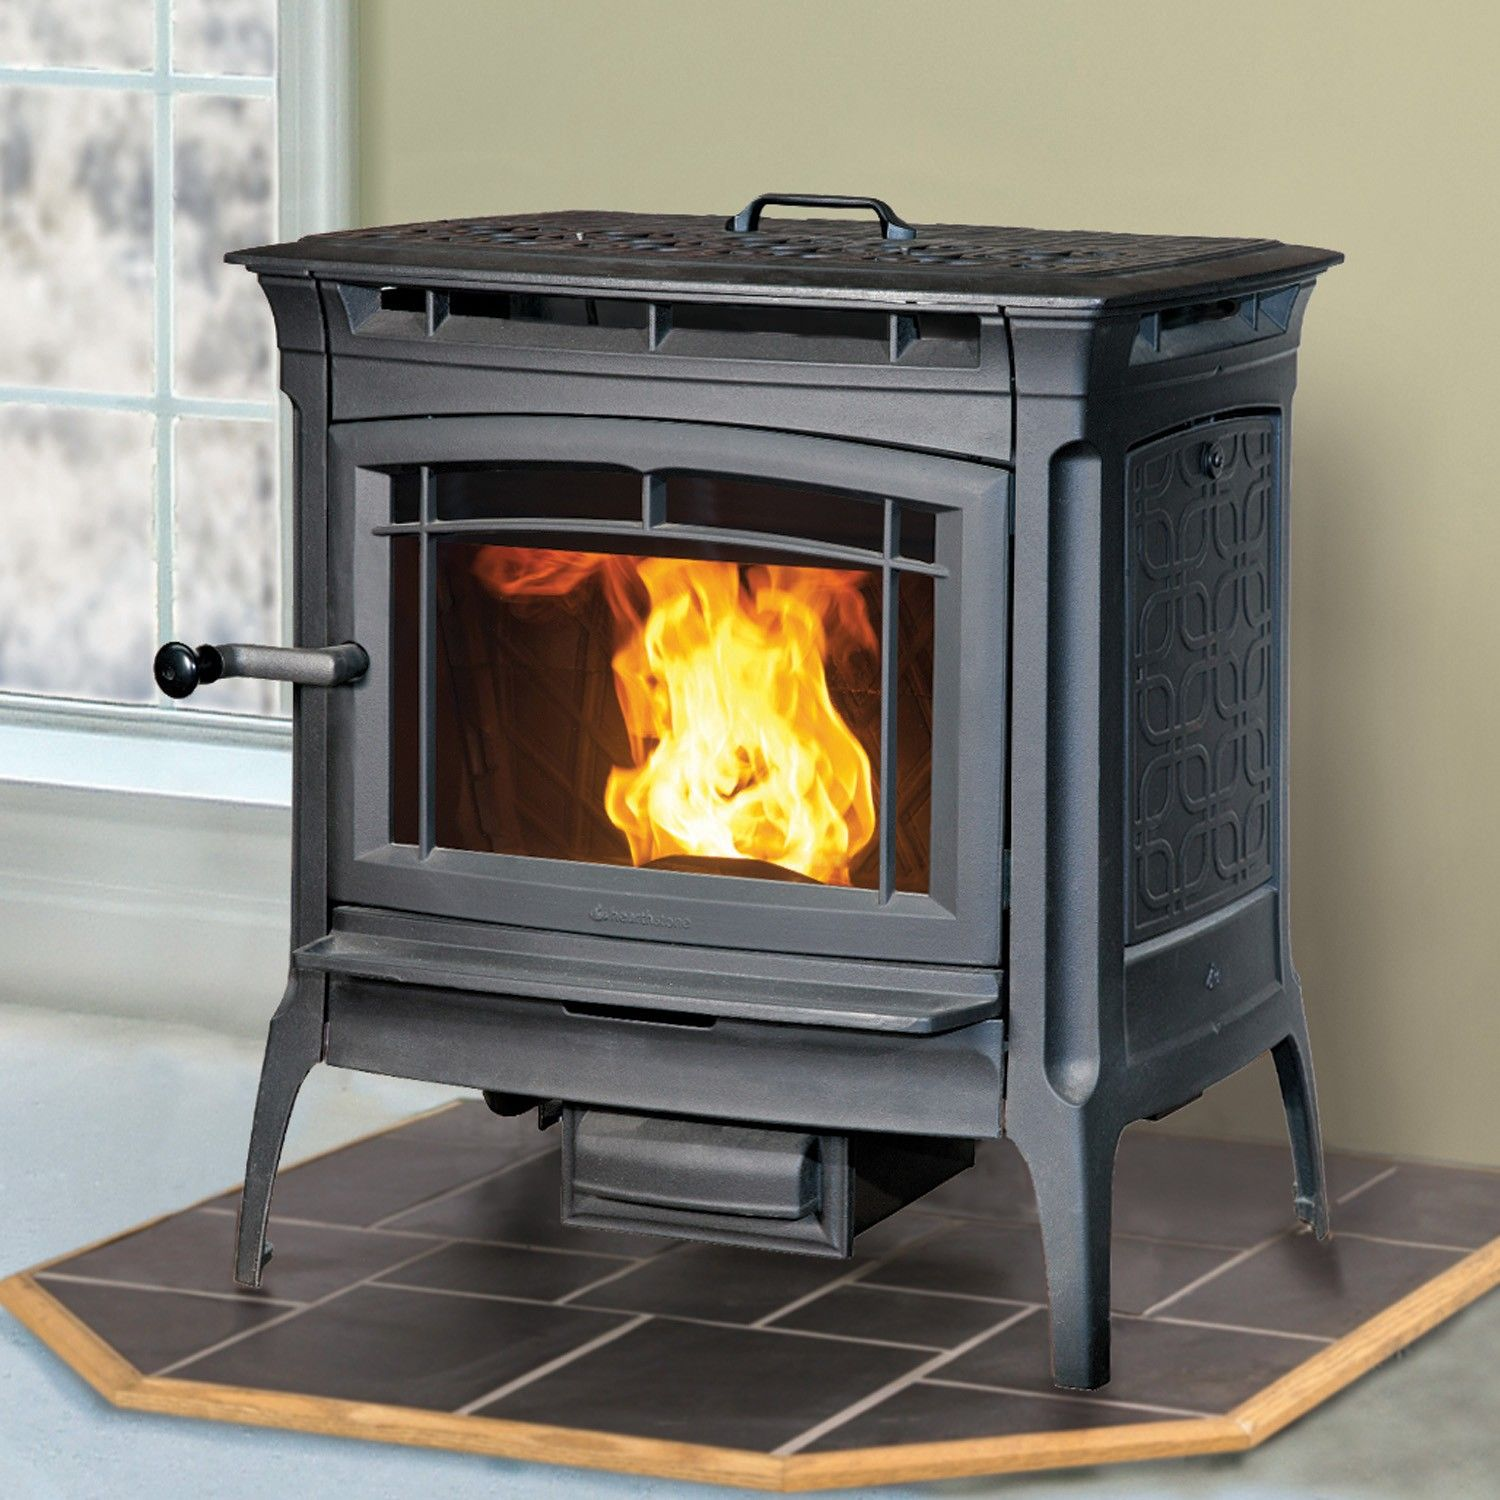 hearthstone heritage 8091 pellet stove in matte black available at